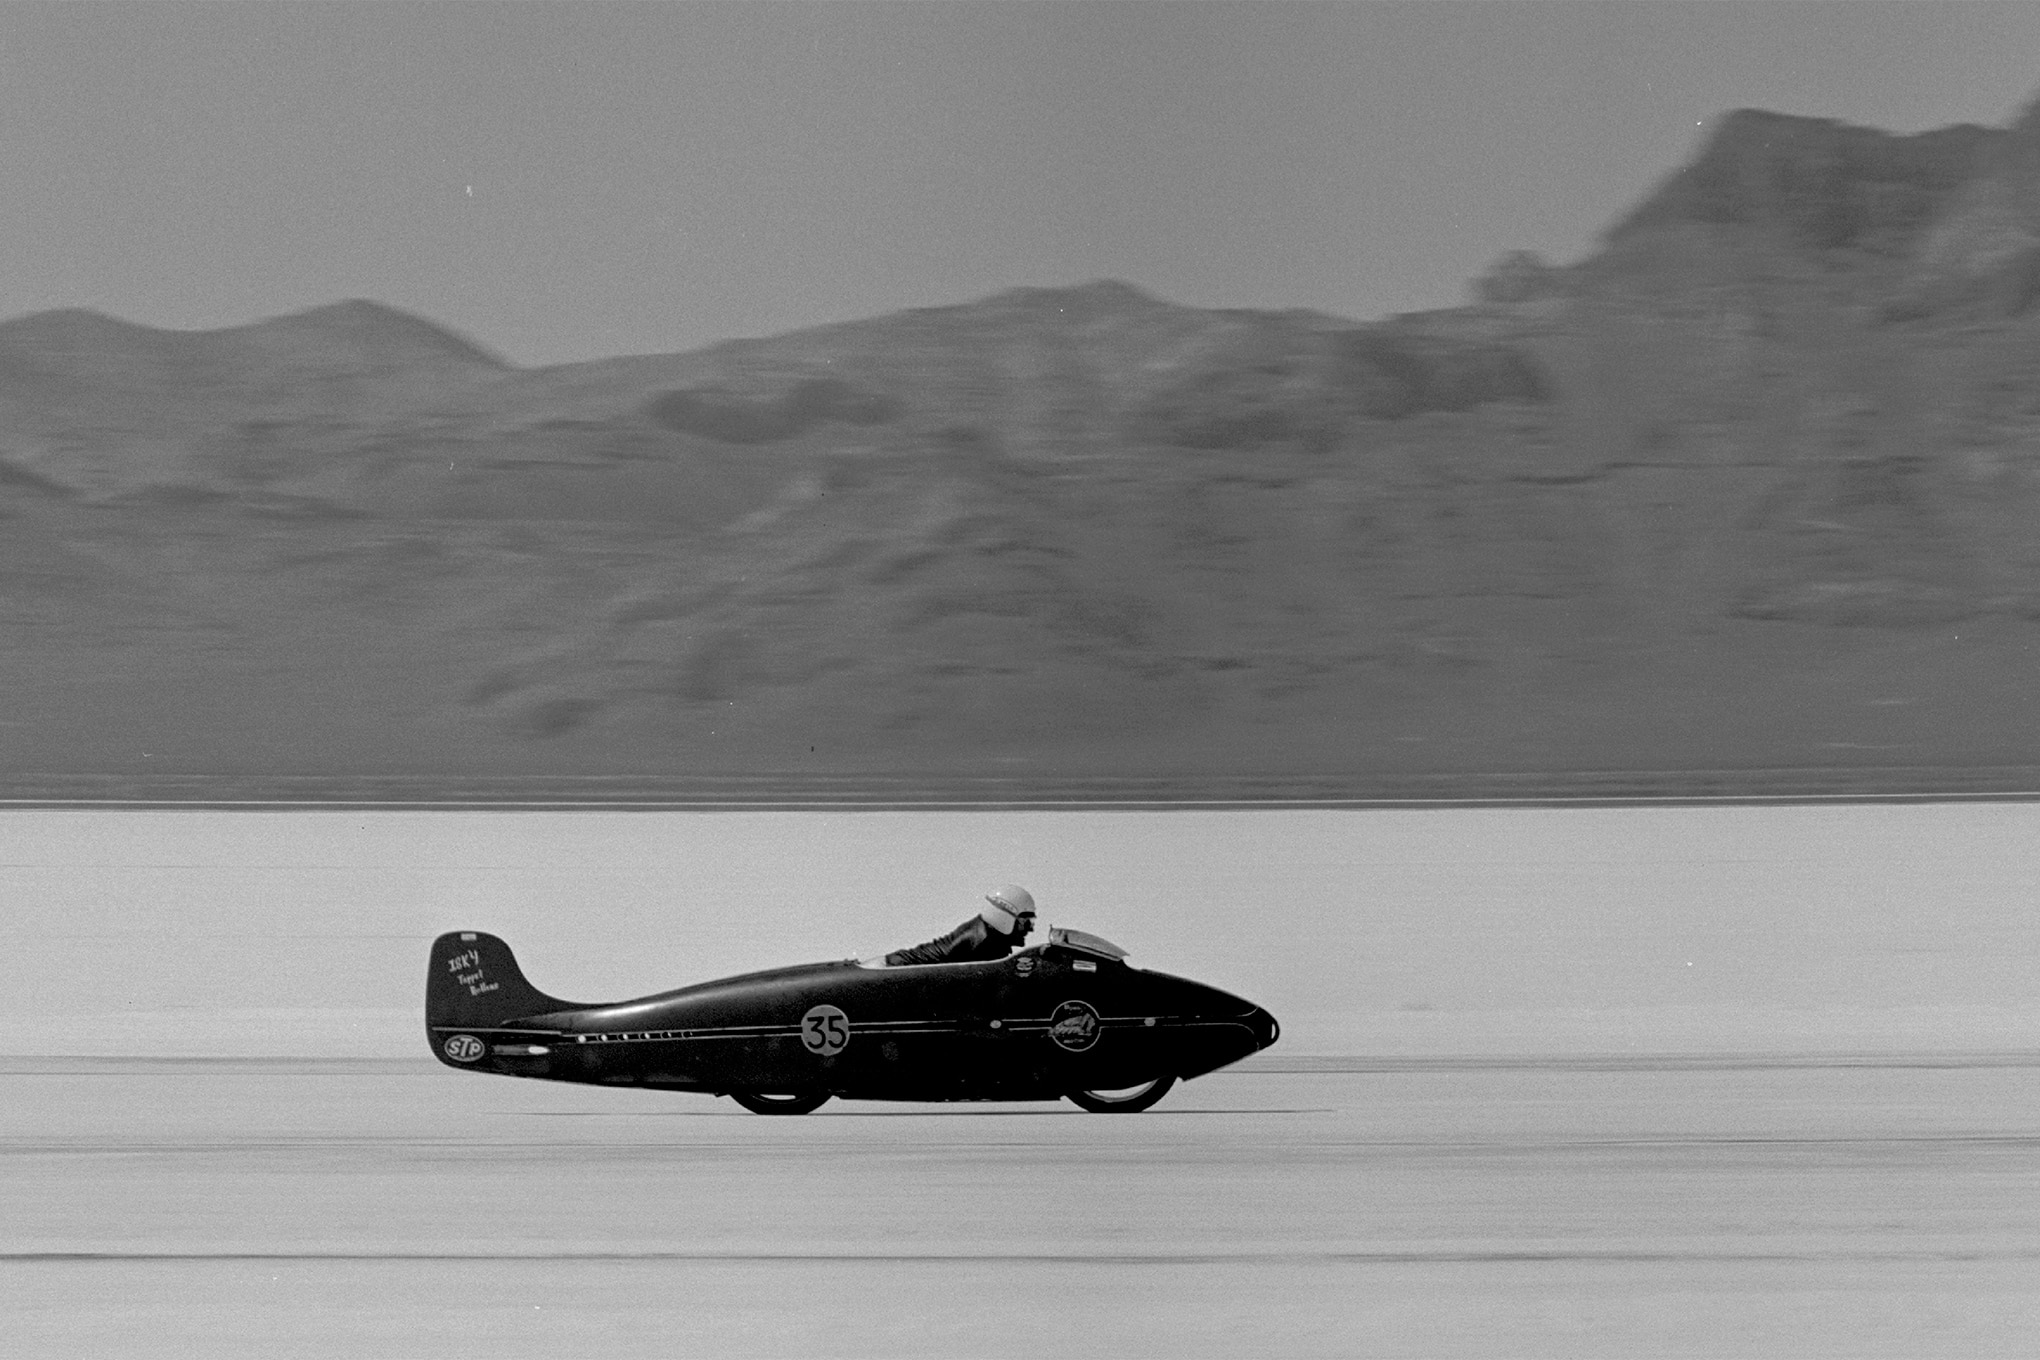 14-struggles-1964-bonneville-cycle-action-side-first-in-sequence